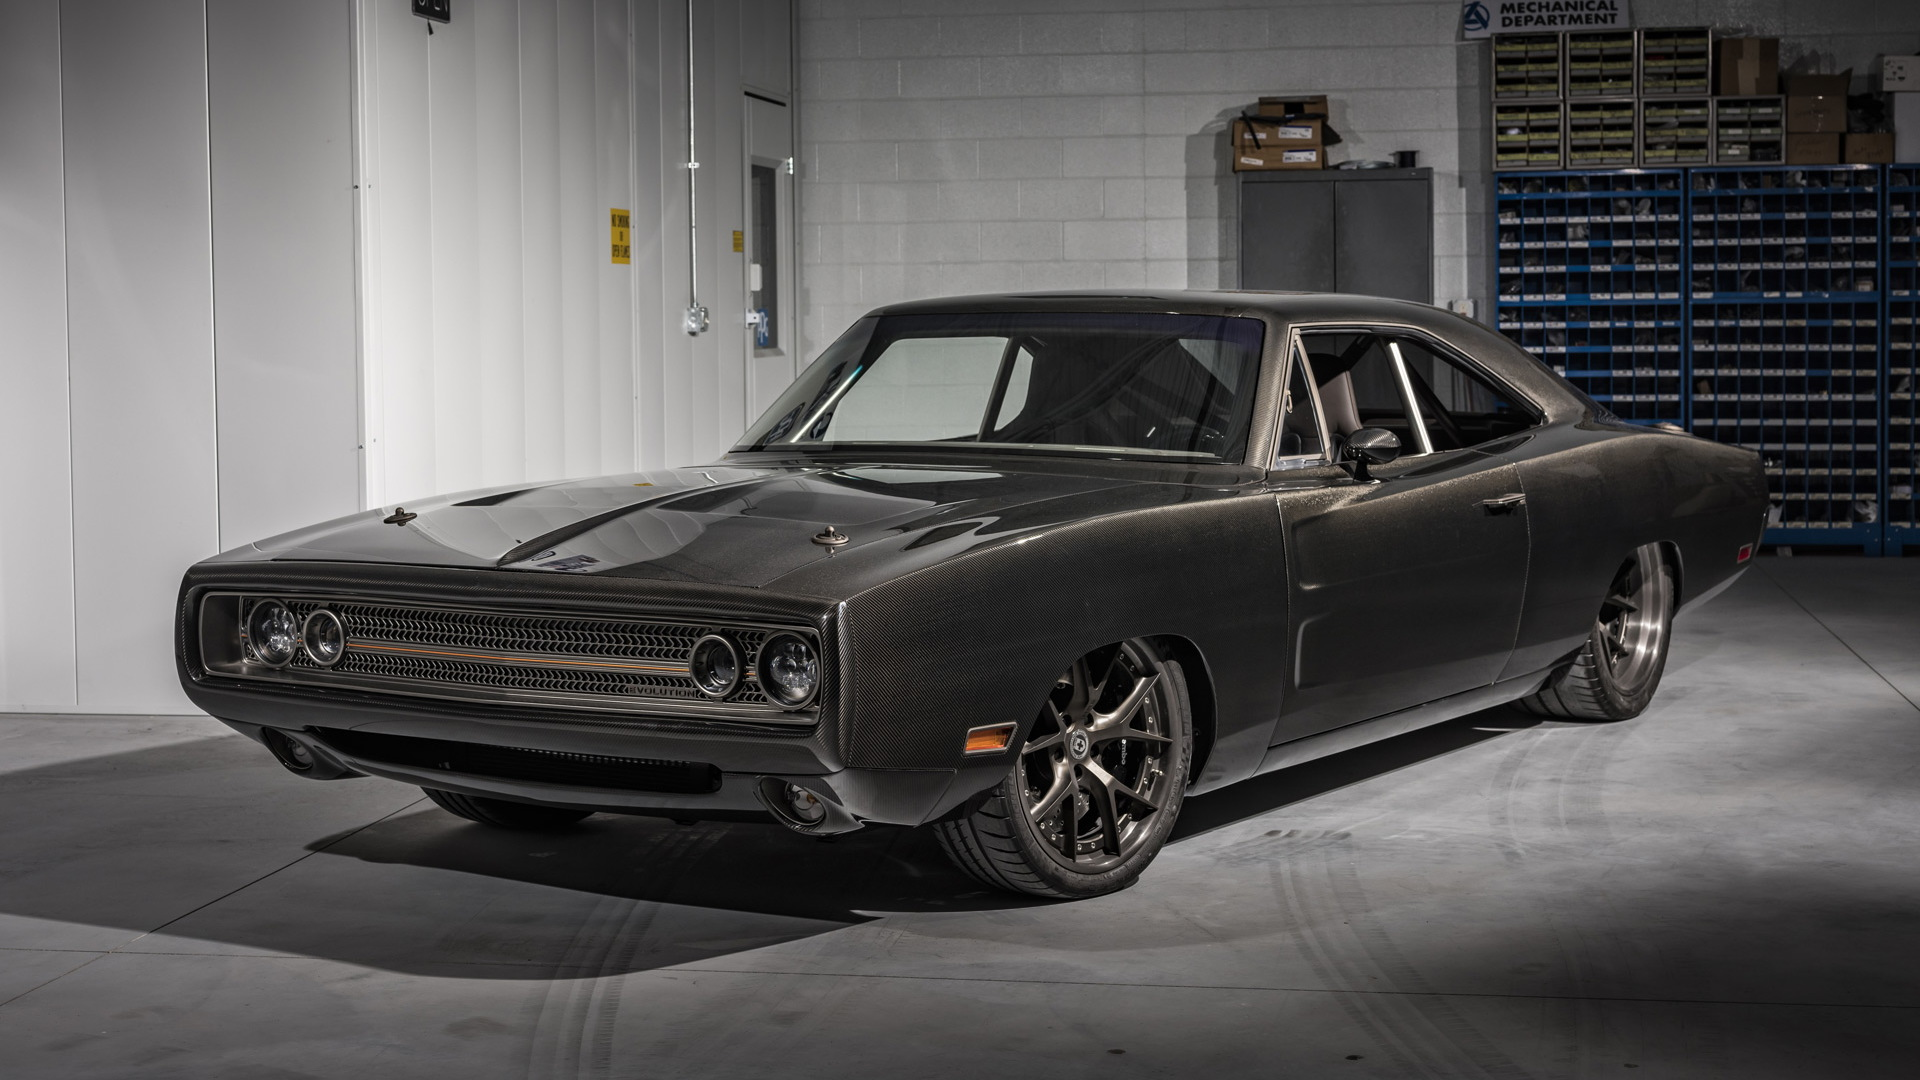 Demon-powered, carbon fiber-bodied 1970 Dodge Charger